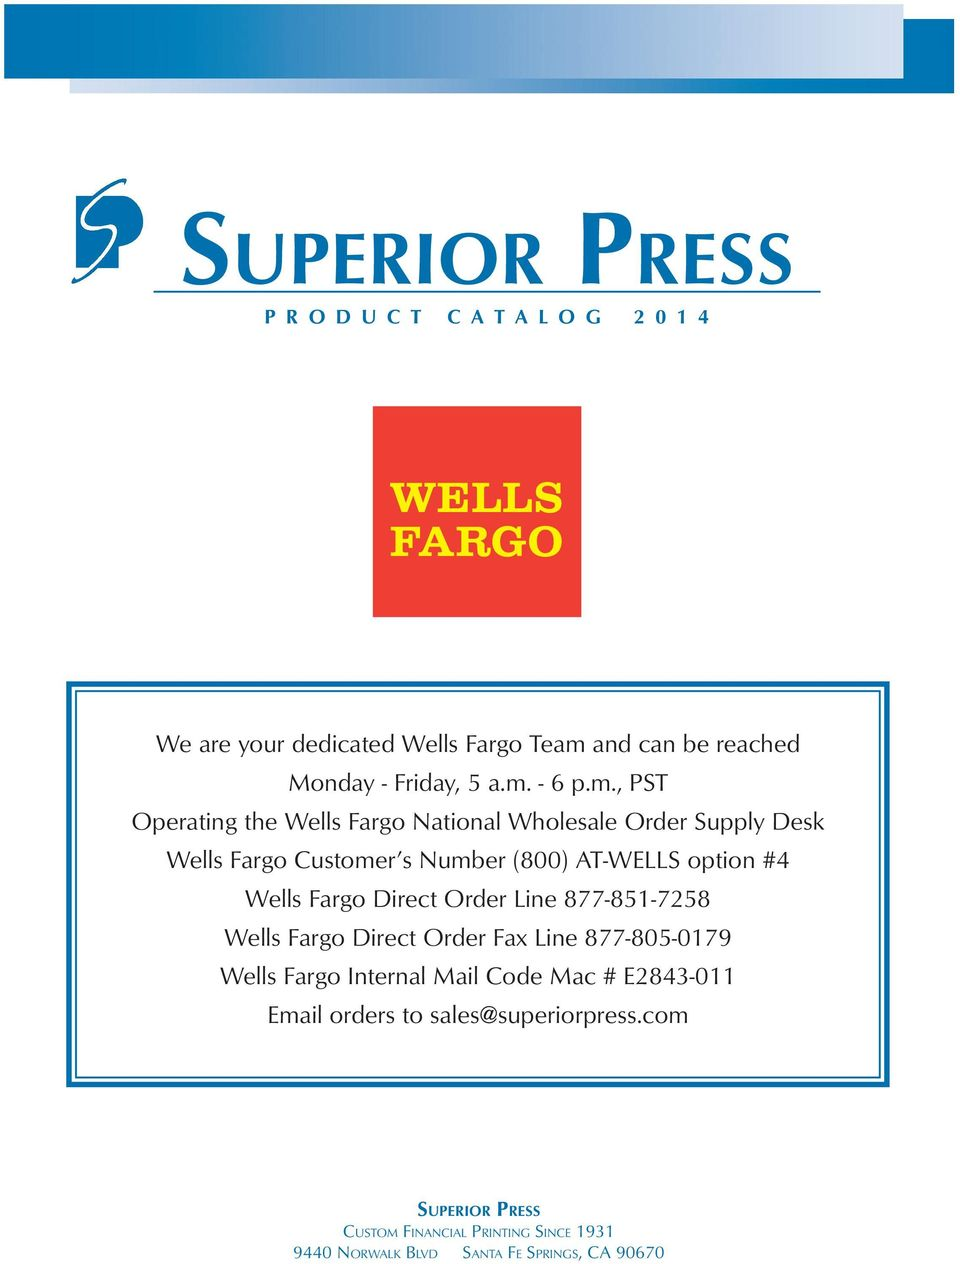 custom financial printing & supplies since 1931 superior Products - PDF